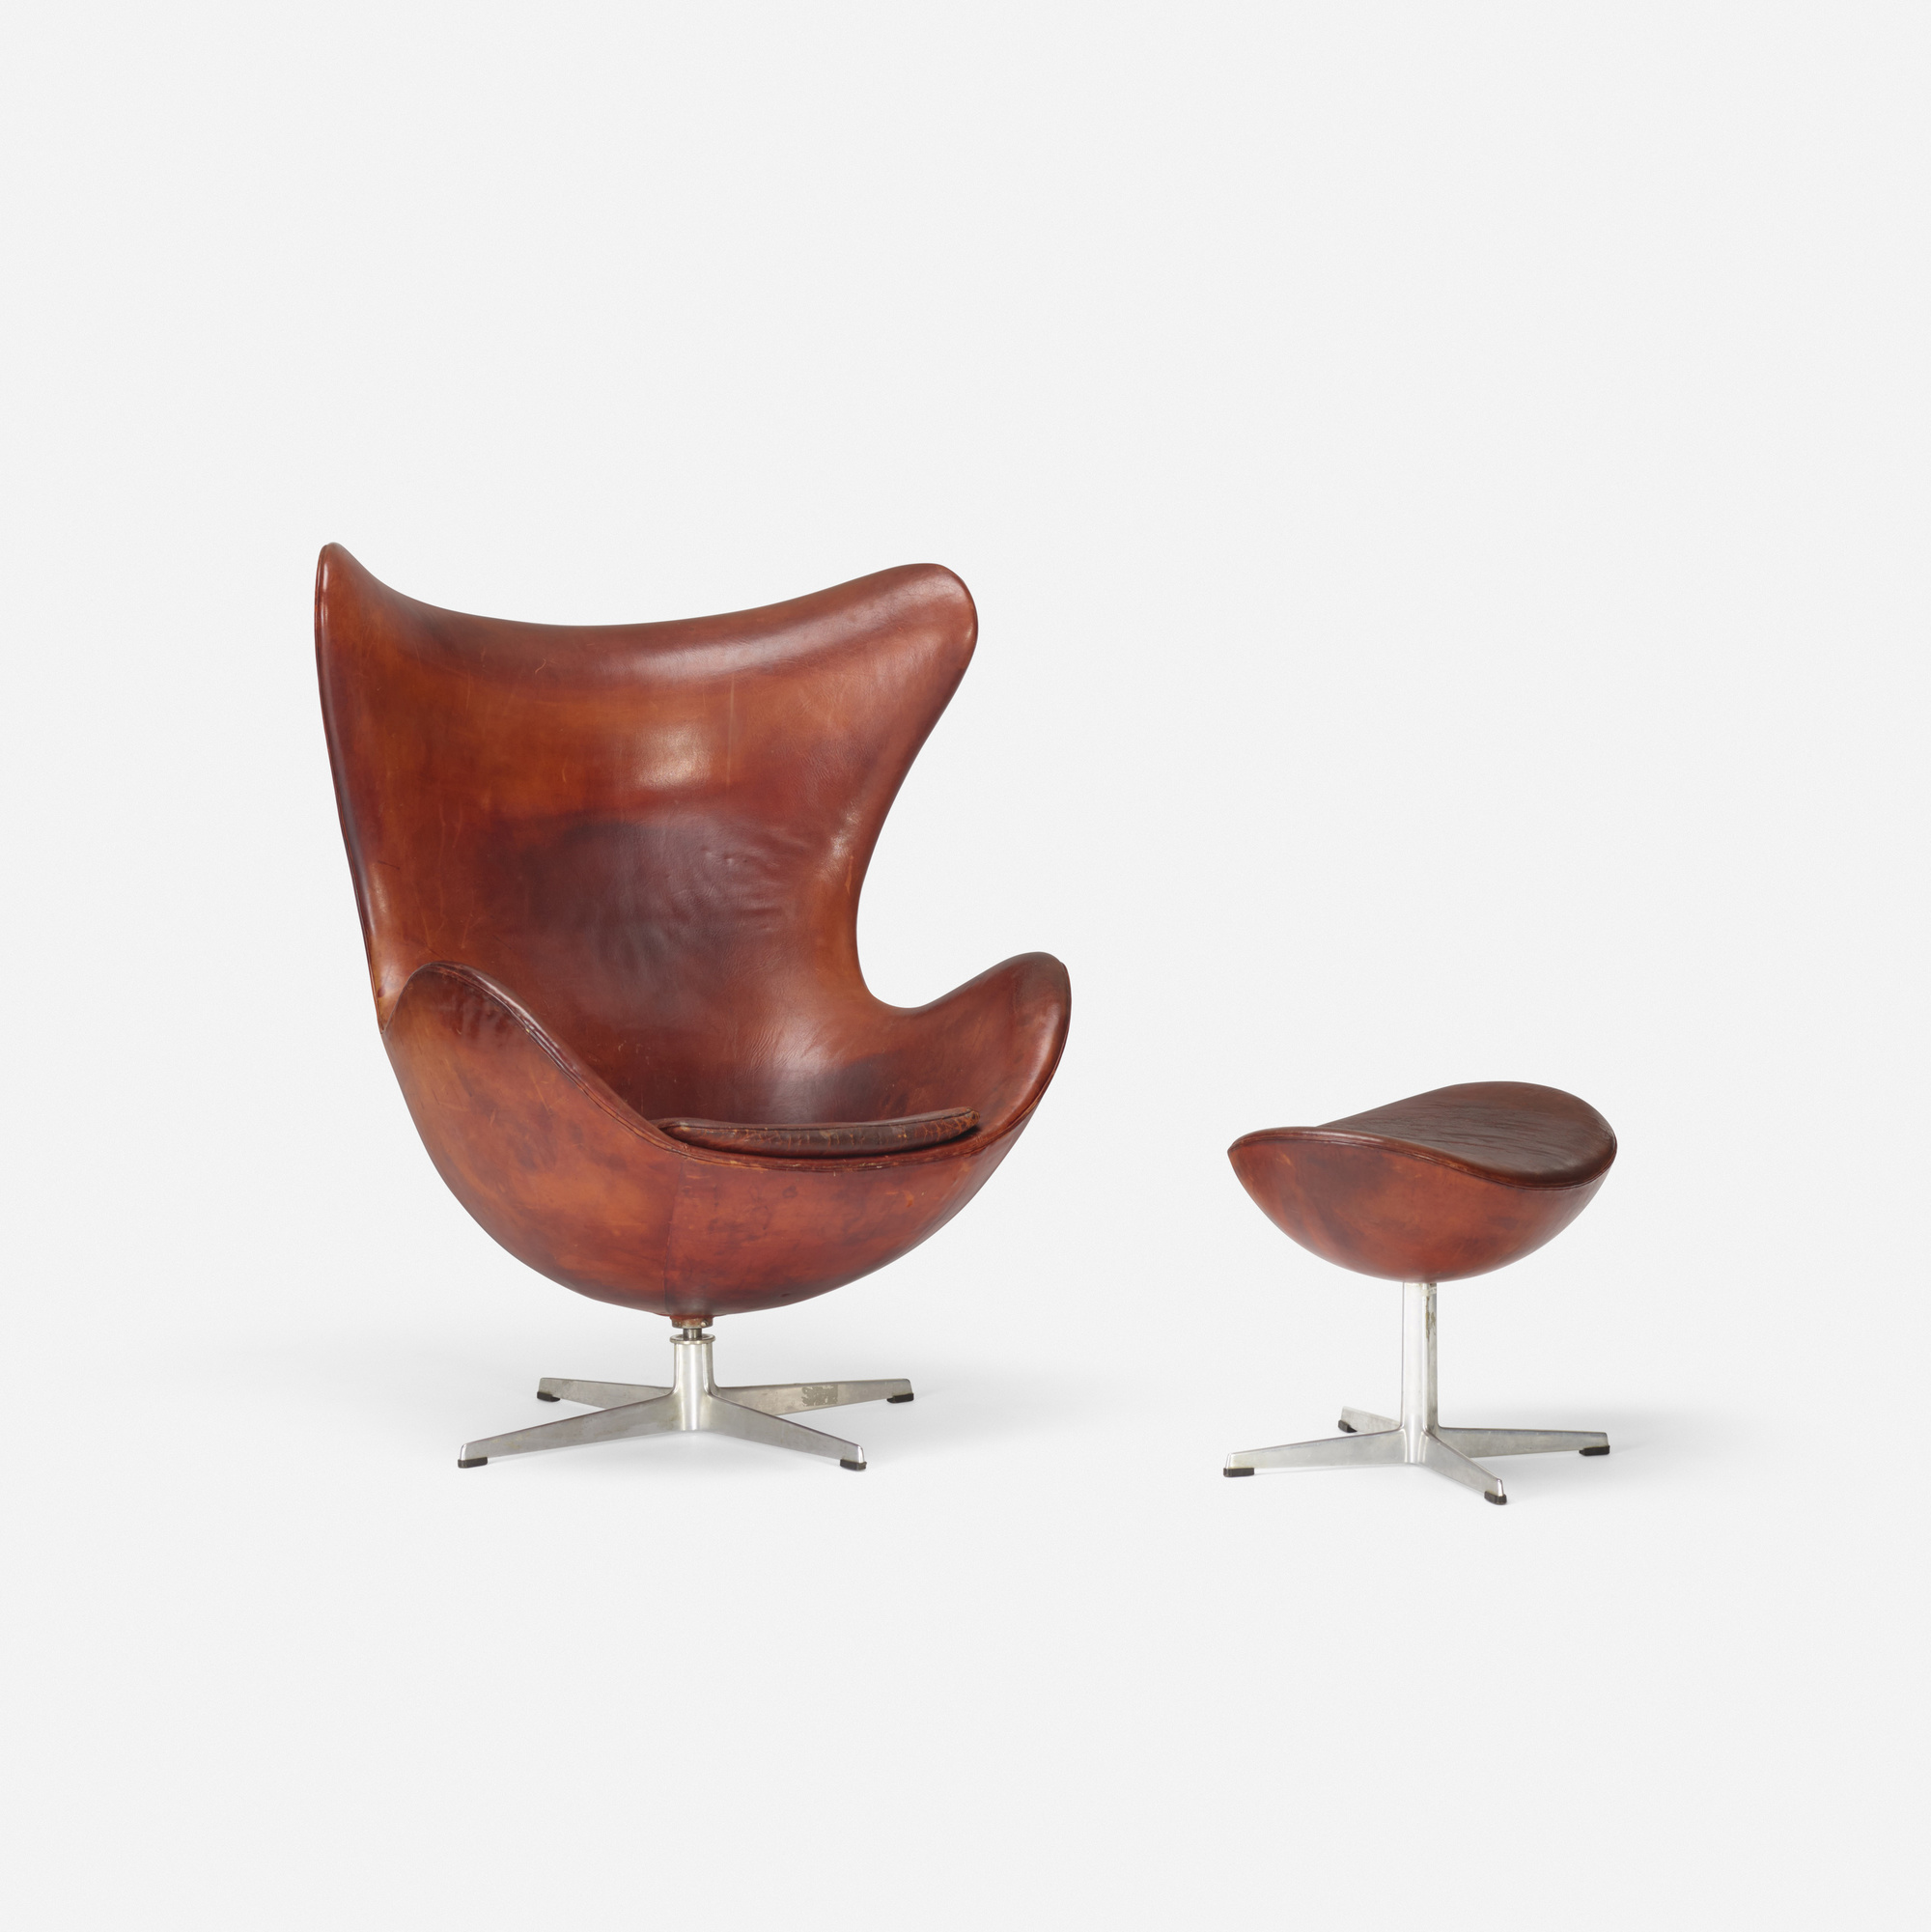 jacobsen furniture. Jacobsen Furniture. 379: Arne / Egg Chair And Ottoman (2 Of 3 Furniture